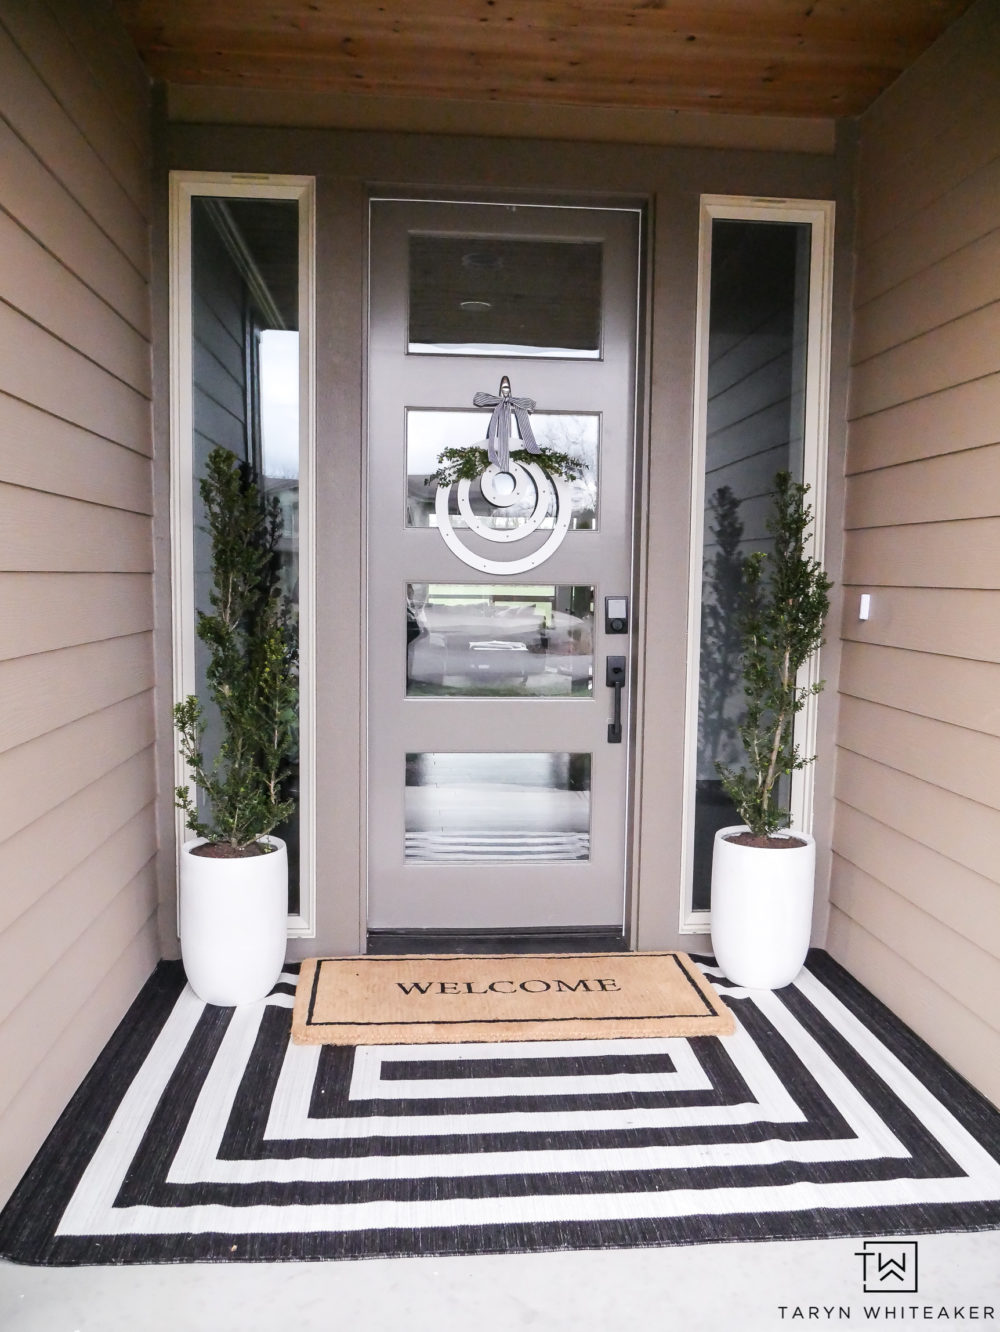 A classic yet modern take on a spring porch! The black and white rug with the modern planters is simple yet so pretty.